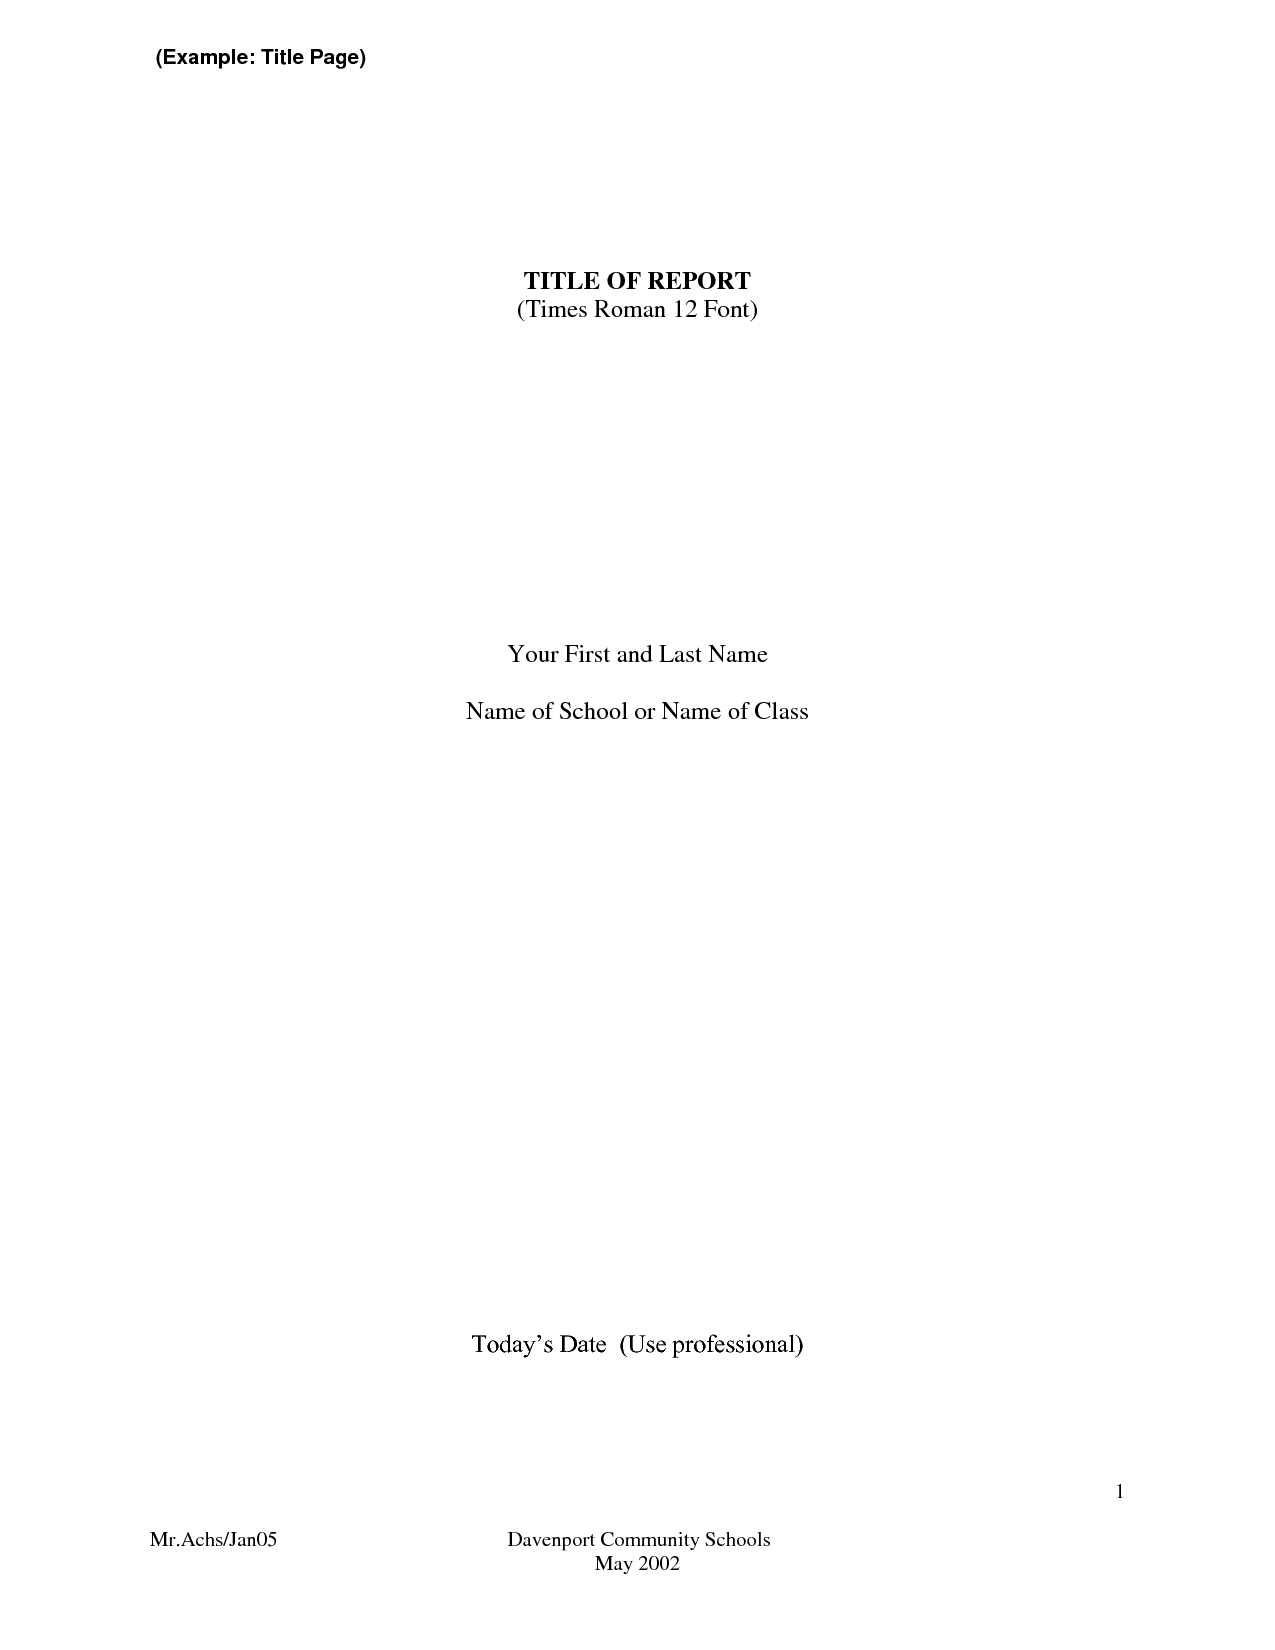 002 Example Cover Page For Research Paper Apa Style Brilliant Ideas Of Title Format Sample Amazing Unique Full